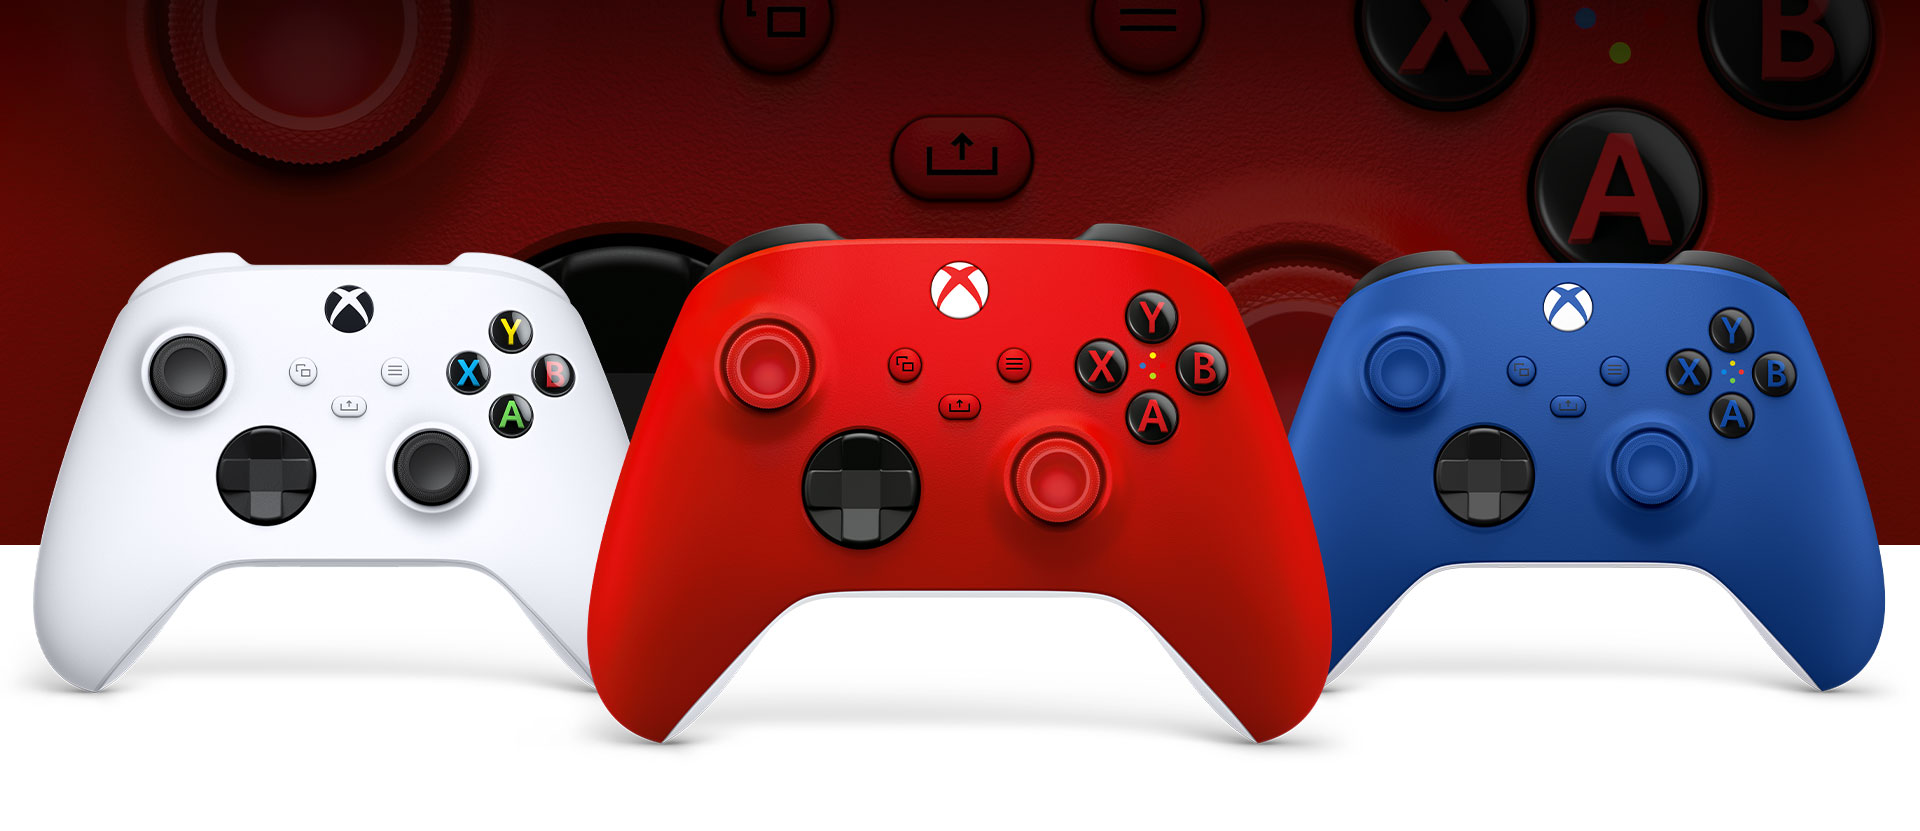 Xbox Pulse Red controller in front with the Robot White and Shock Blue controllers beside it.